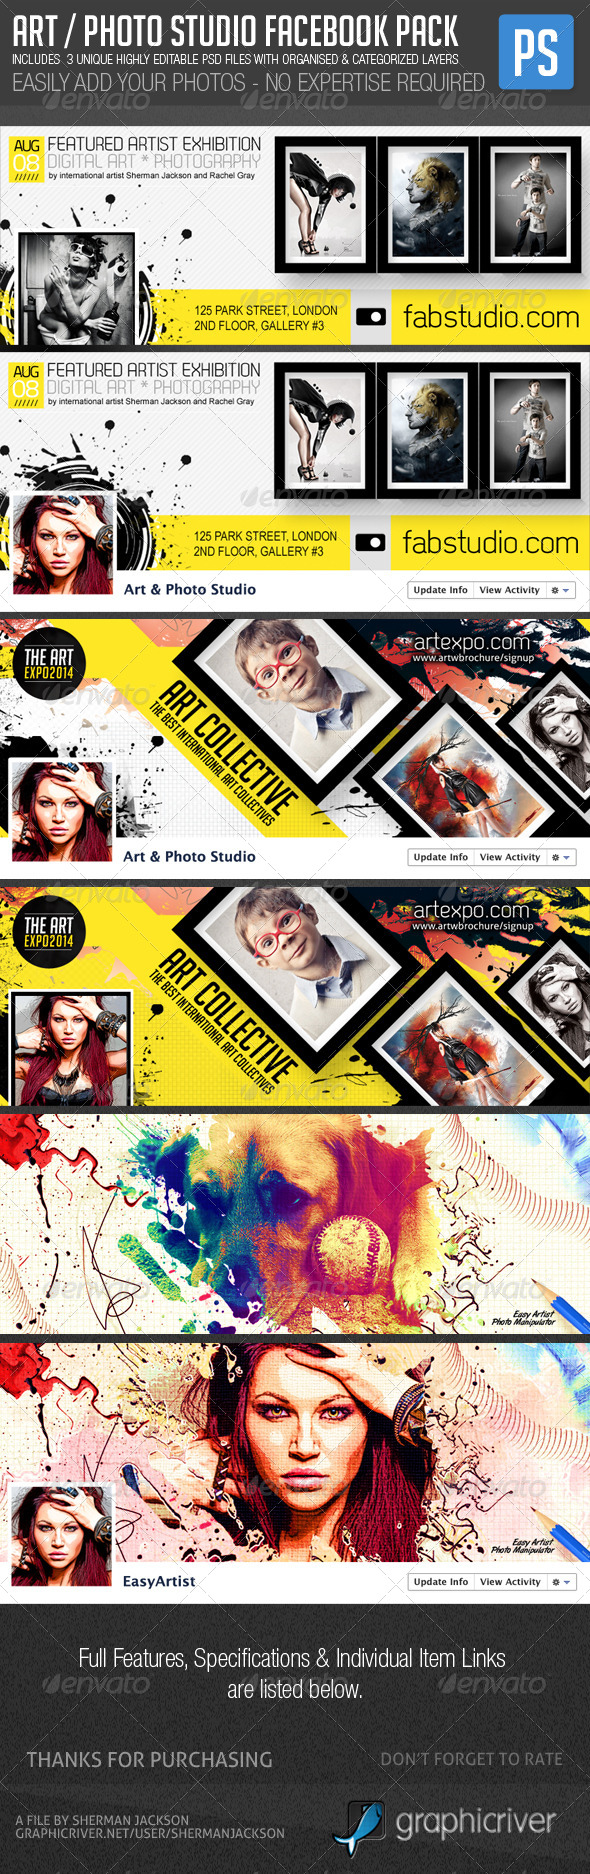 GraphicRiver Art Photo Facebook Cover Premium Pack 6835082